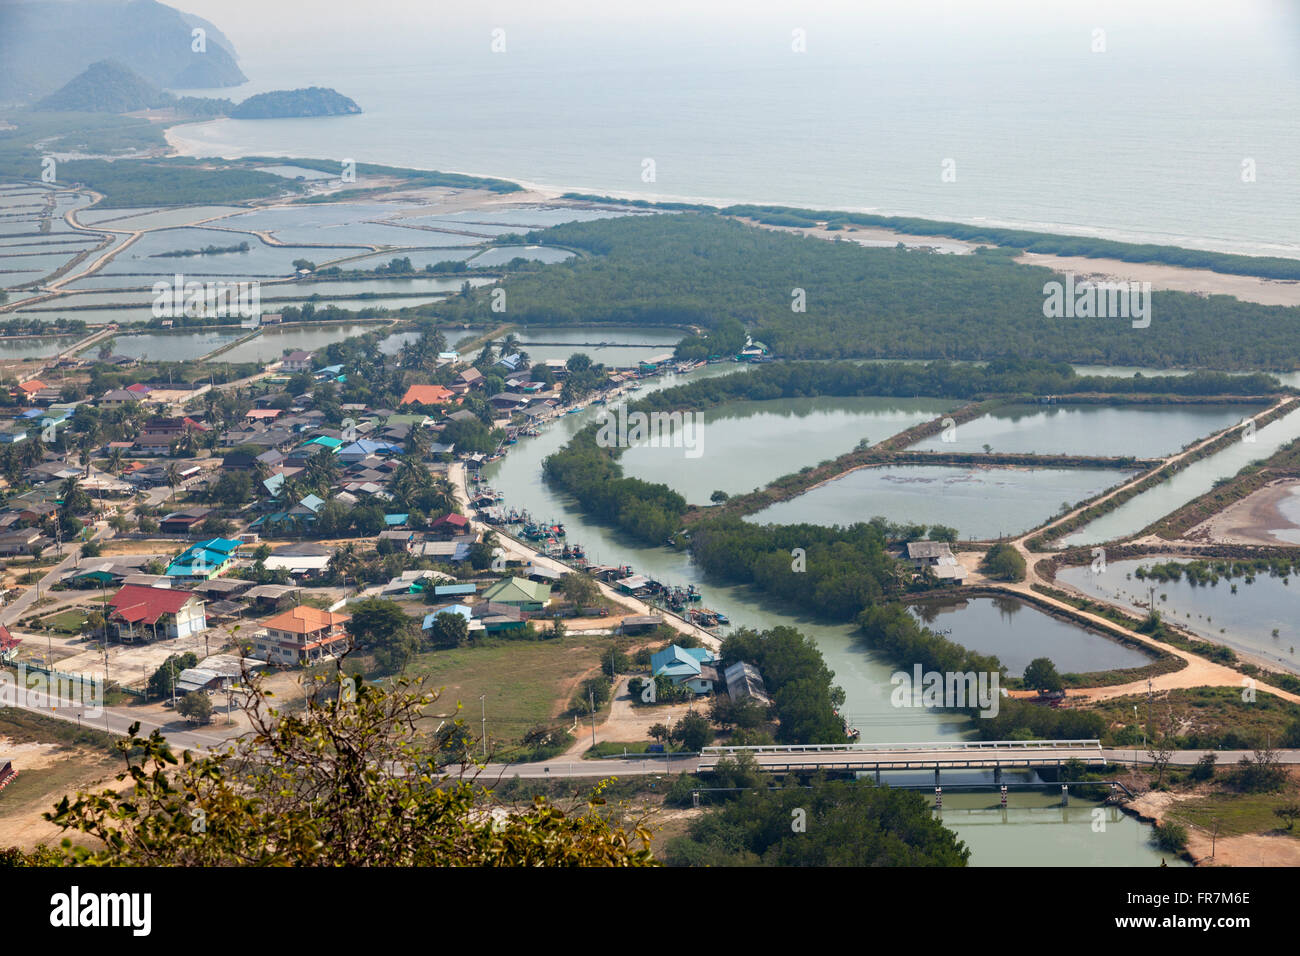 From the Khao Daeng vantage point, a view on part of the Khao Sam Roi Yot marine national park, prawn ponds and - Stock Image